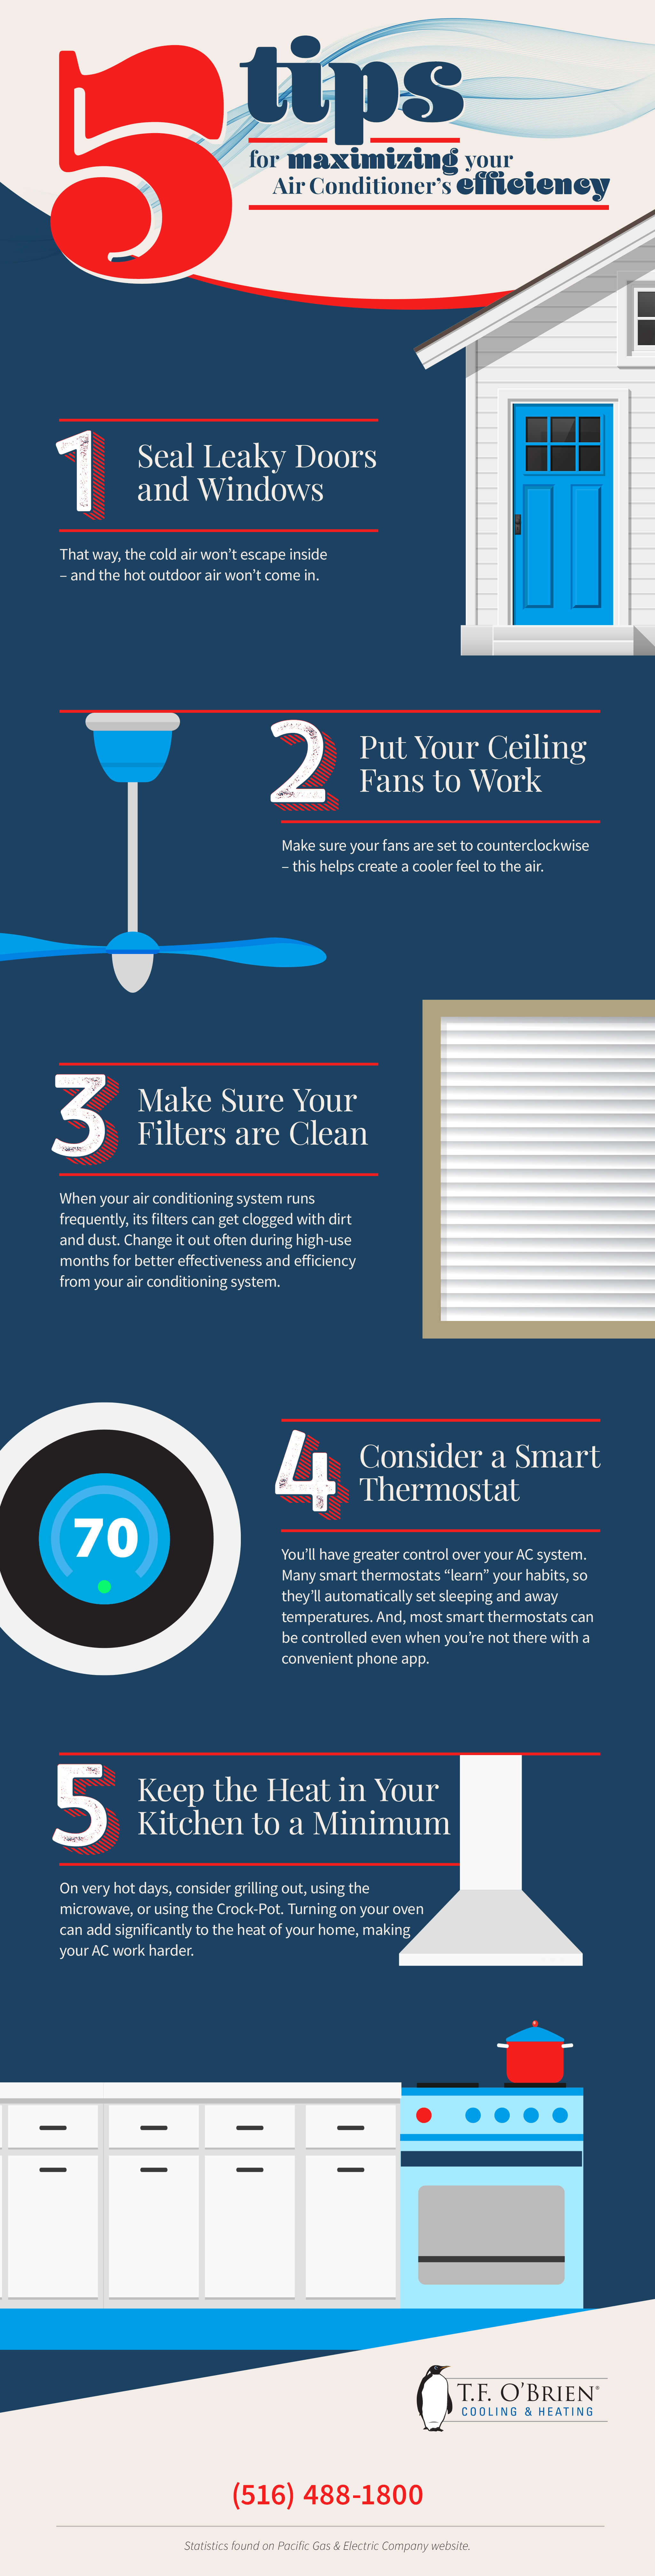 Maximizing air conditioner efficiency infographic